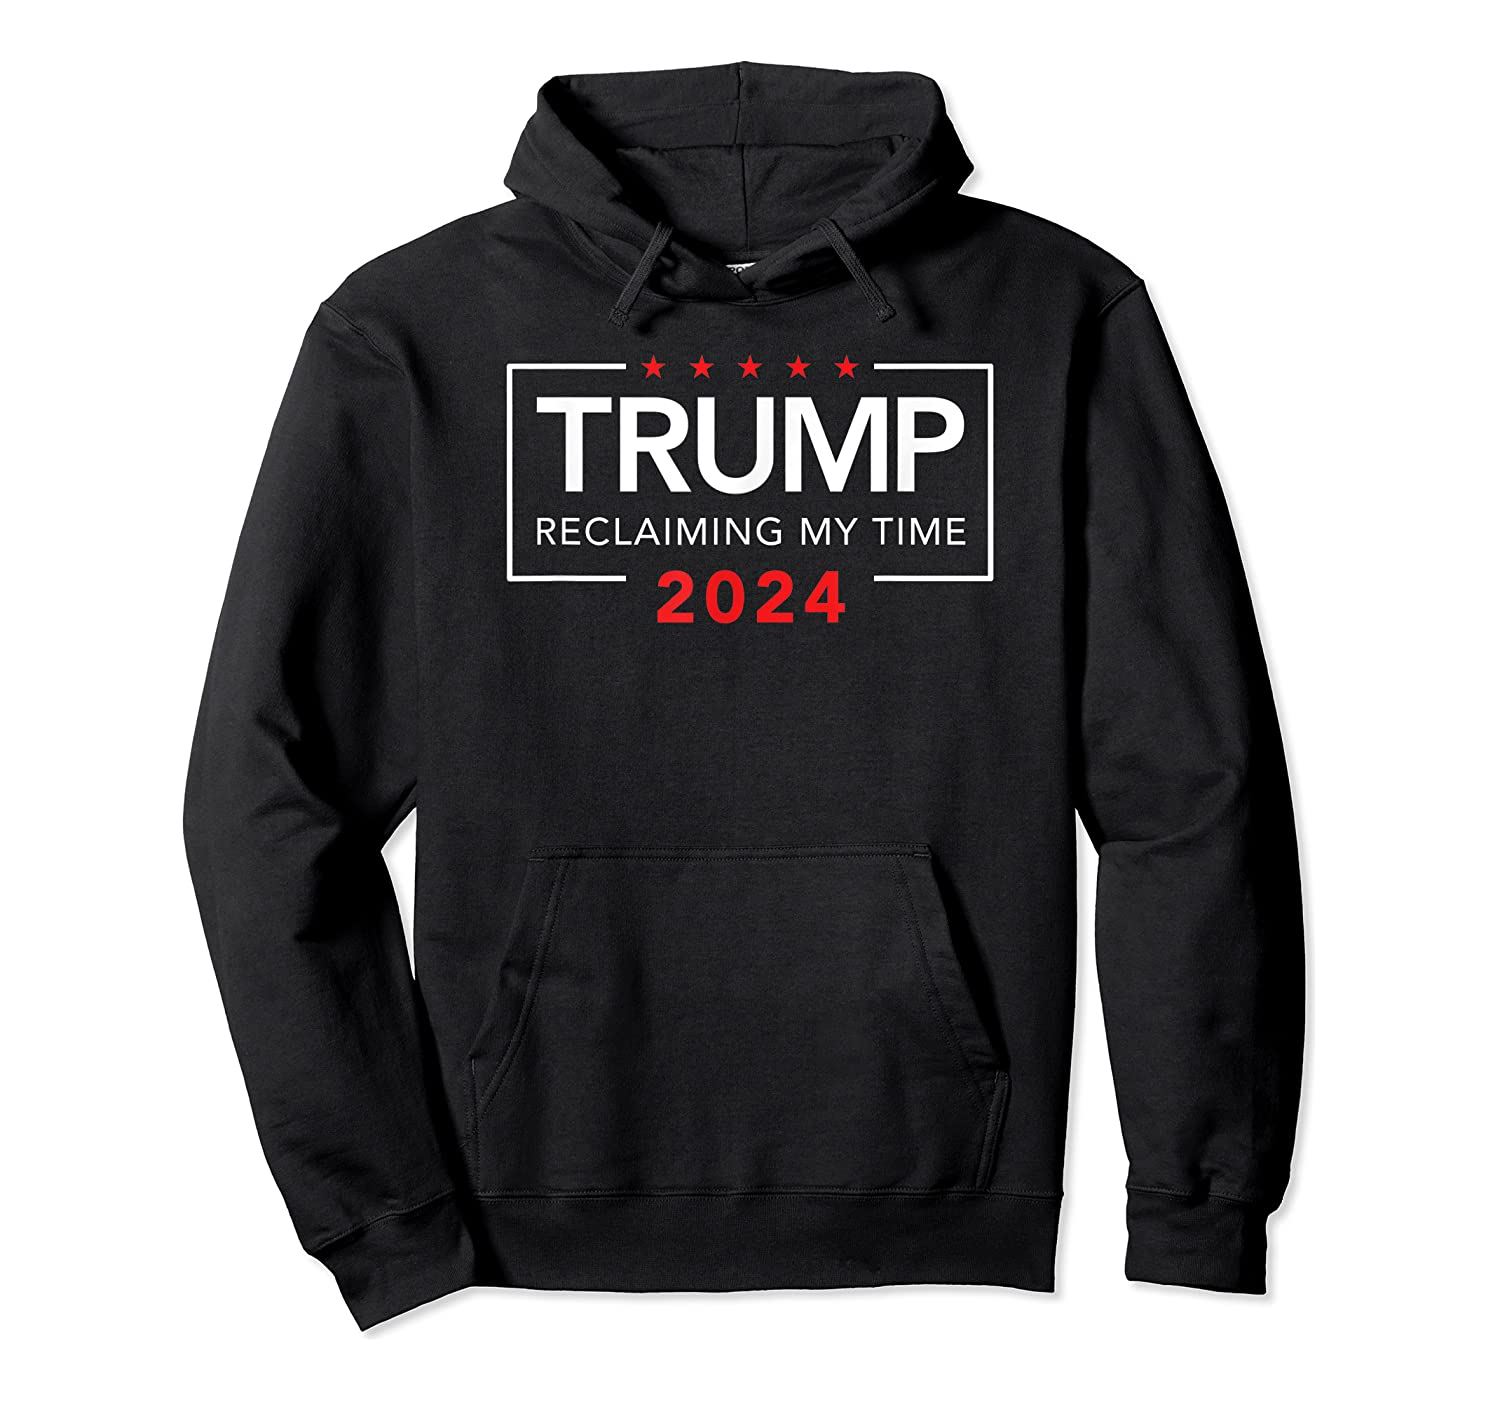 Trump 2024 Reclaiming My Time Funny Political Election T-shirt Unisex Pullover Hoodie